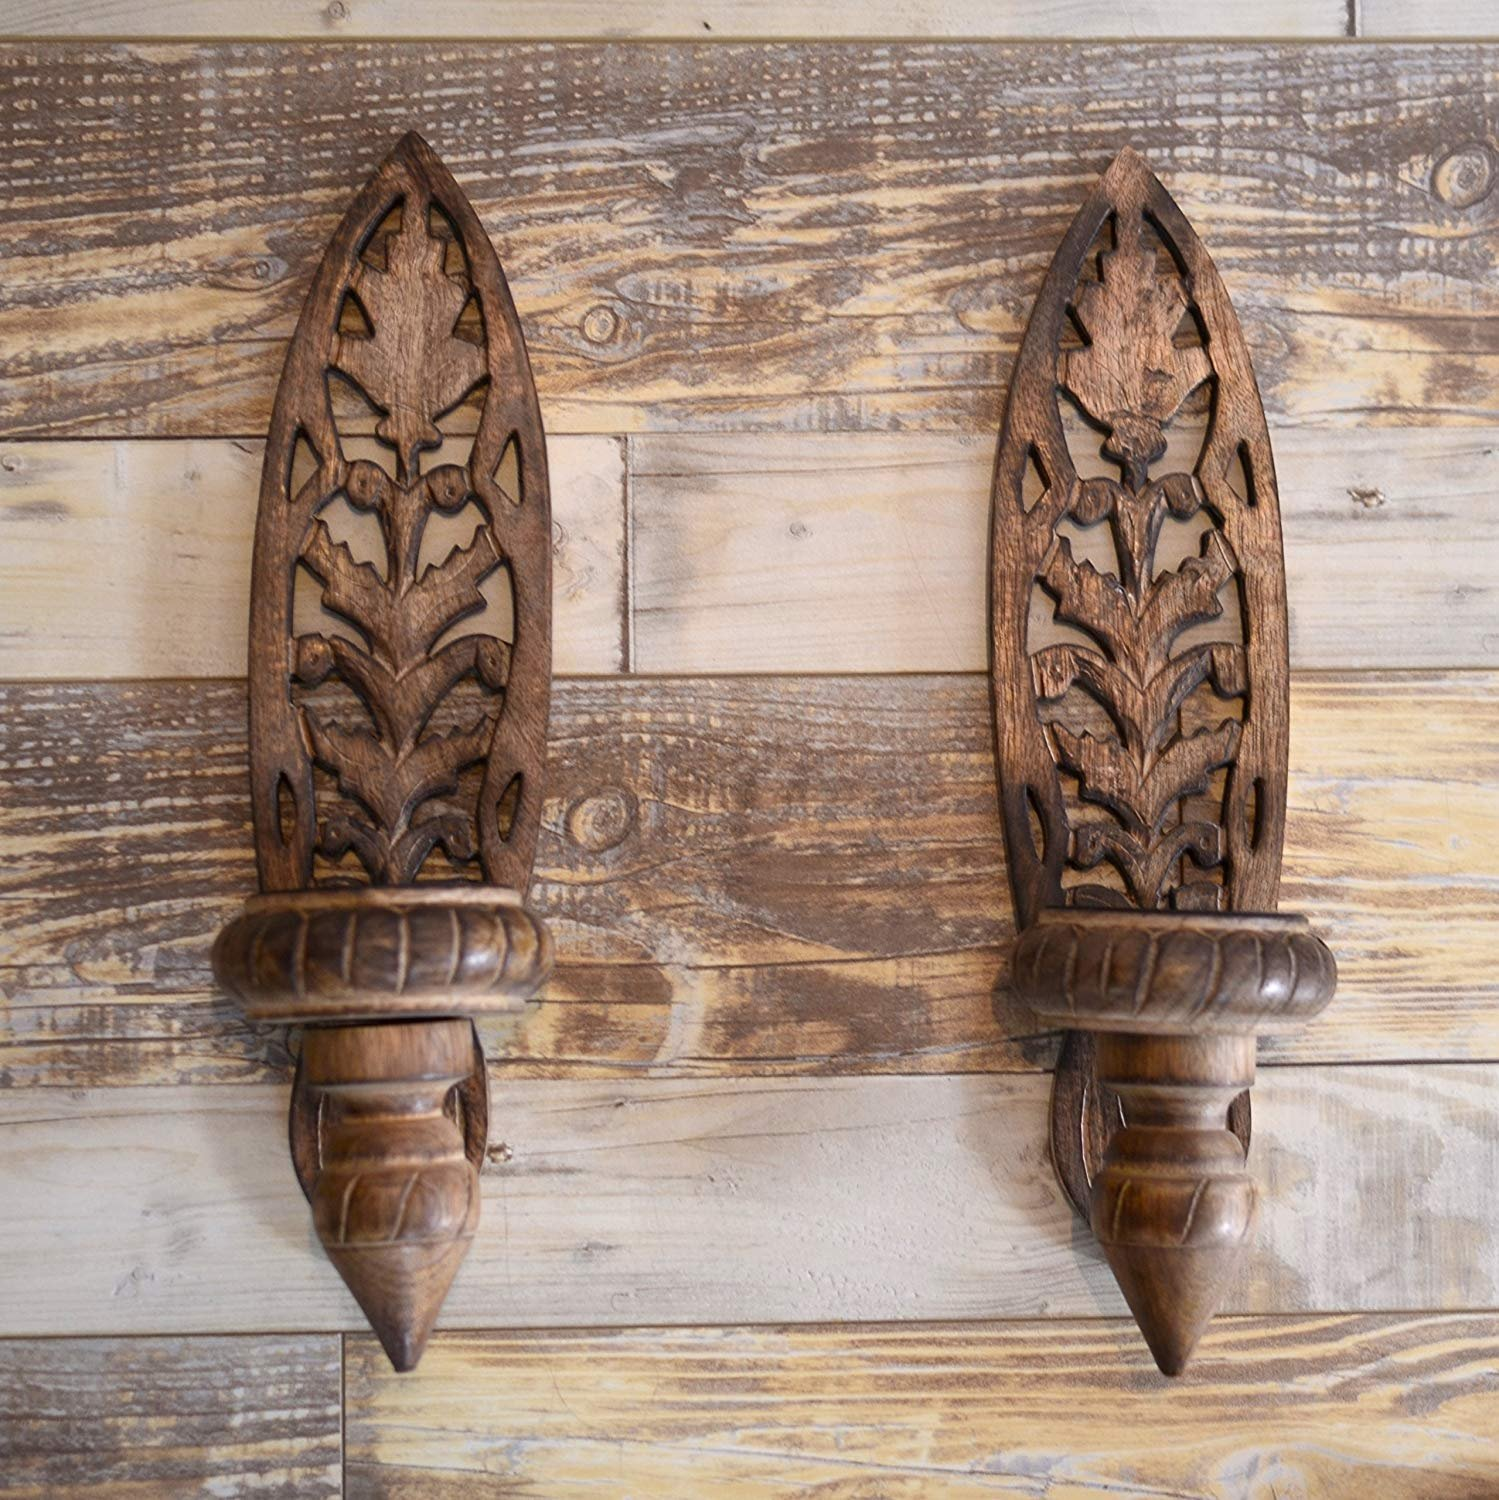 Rusticity Wood Wall Candle Holder Sconce - Set of 2 | Handmade | (15in x 4.5in)